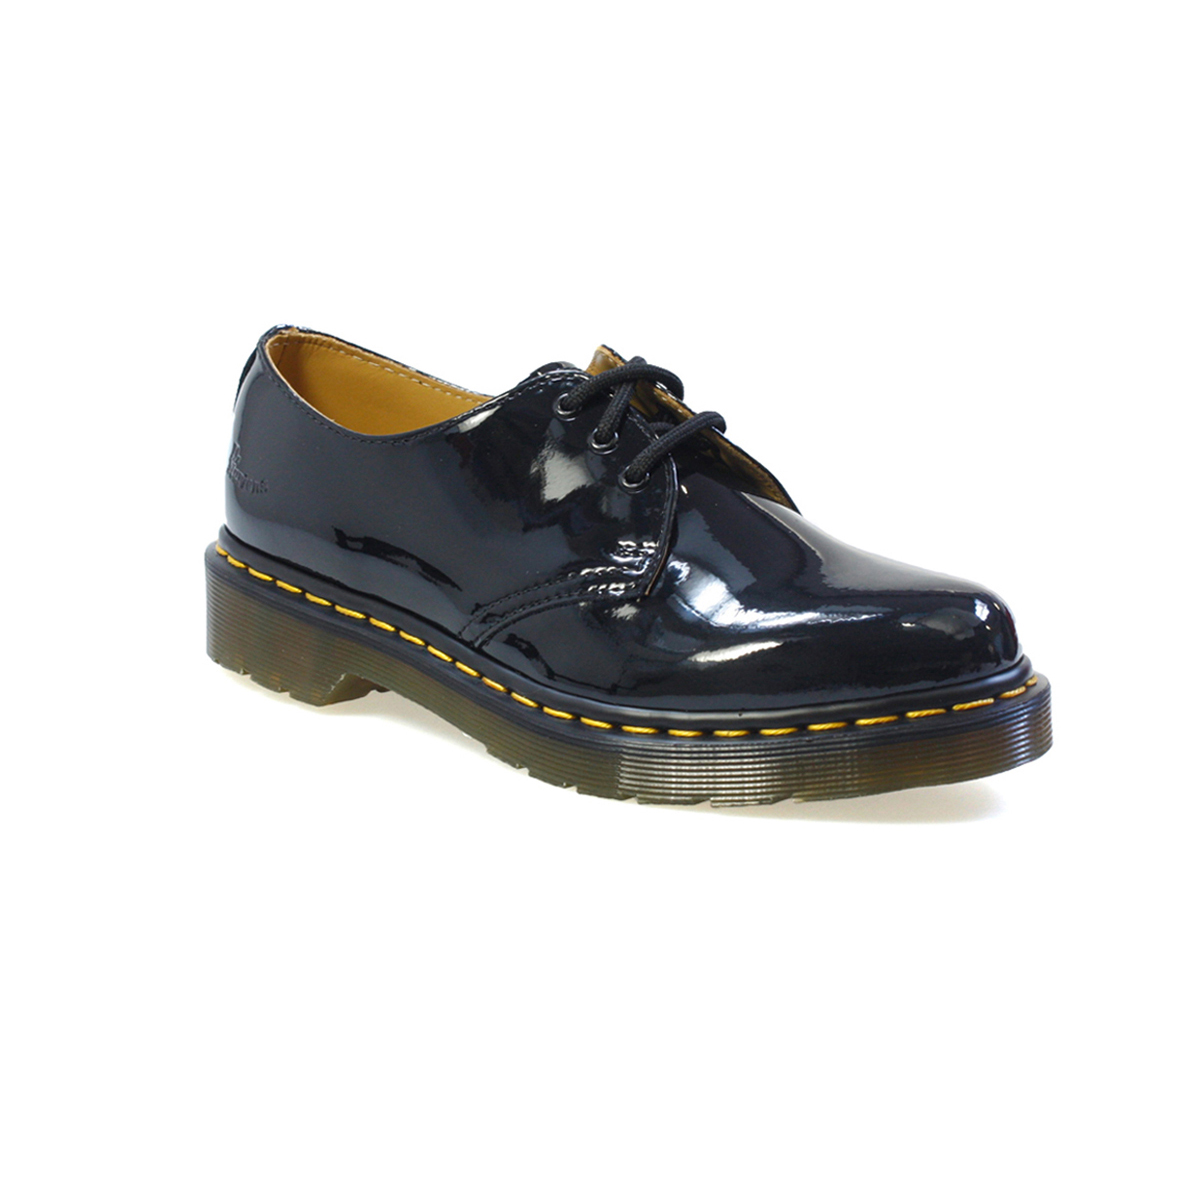 Doc Marten Shoes 1 Think About Shoes